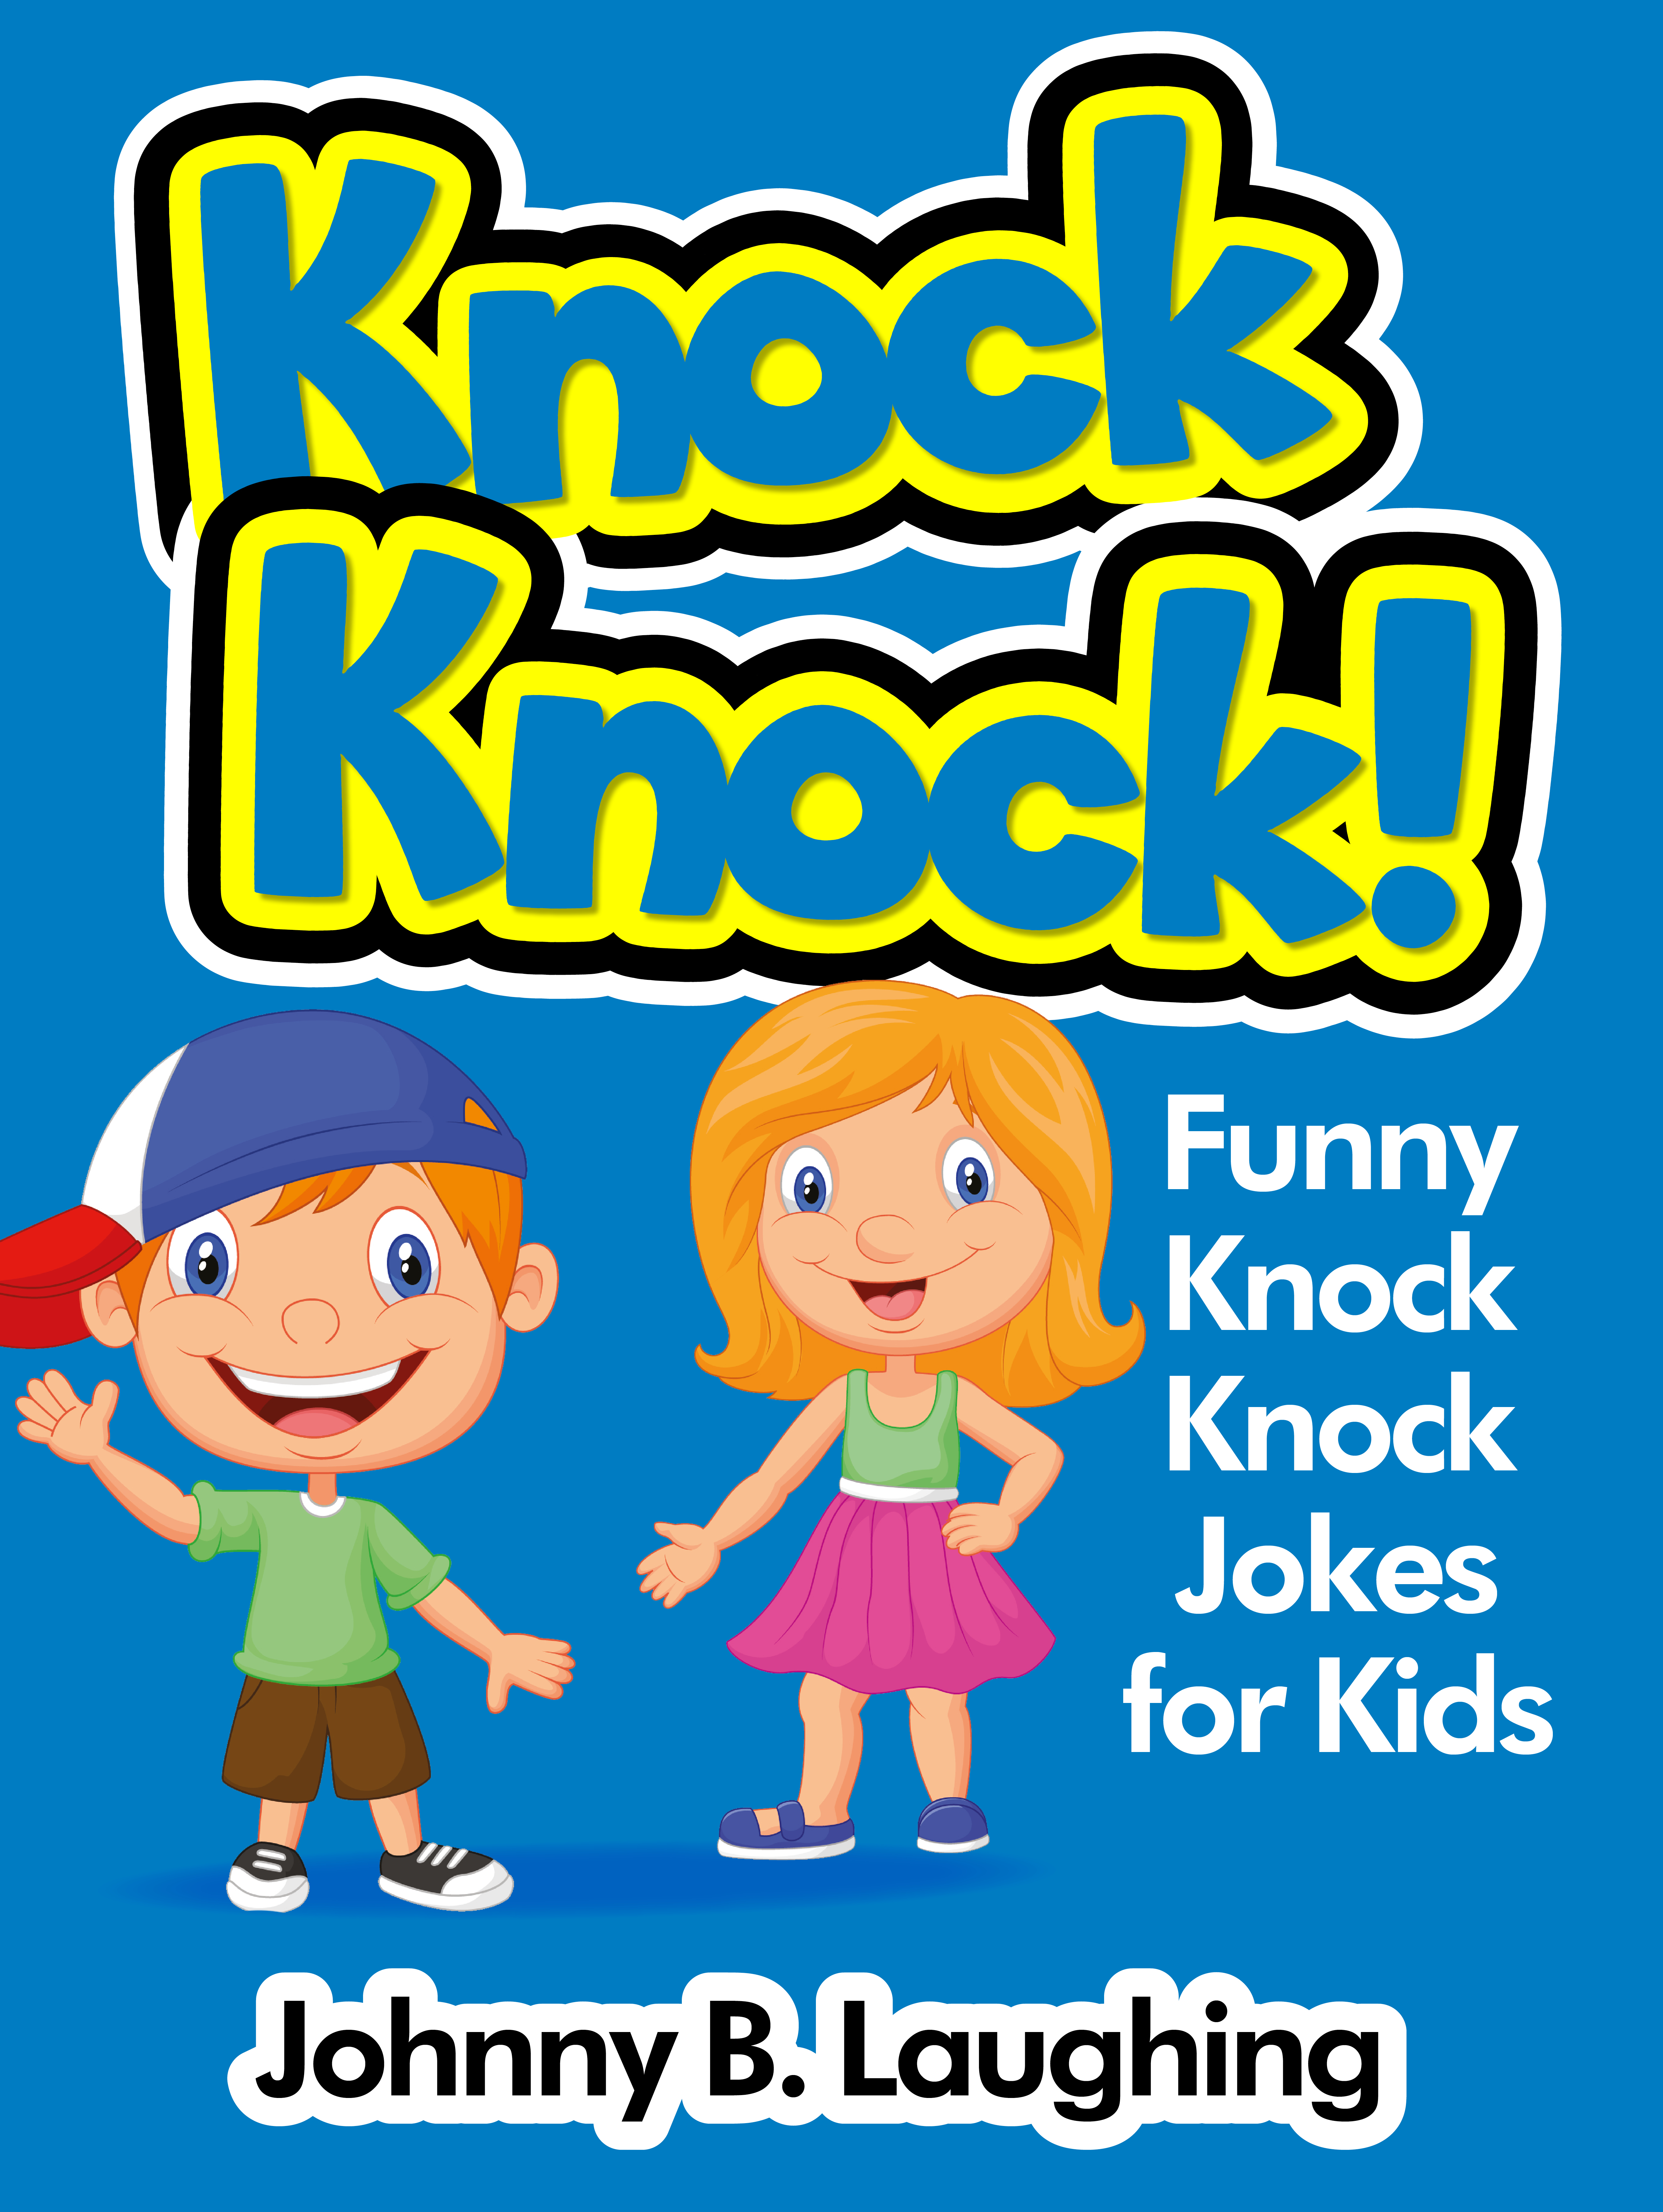 Knock Knock Funny Knock Knock Jokes For Kids An Ebook By Johnny B Laughing